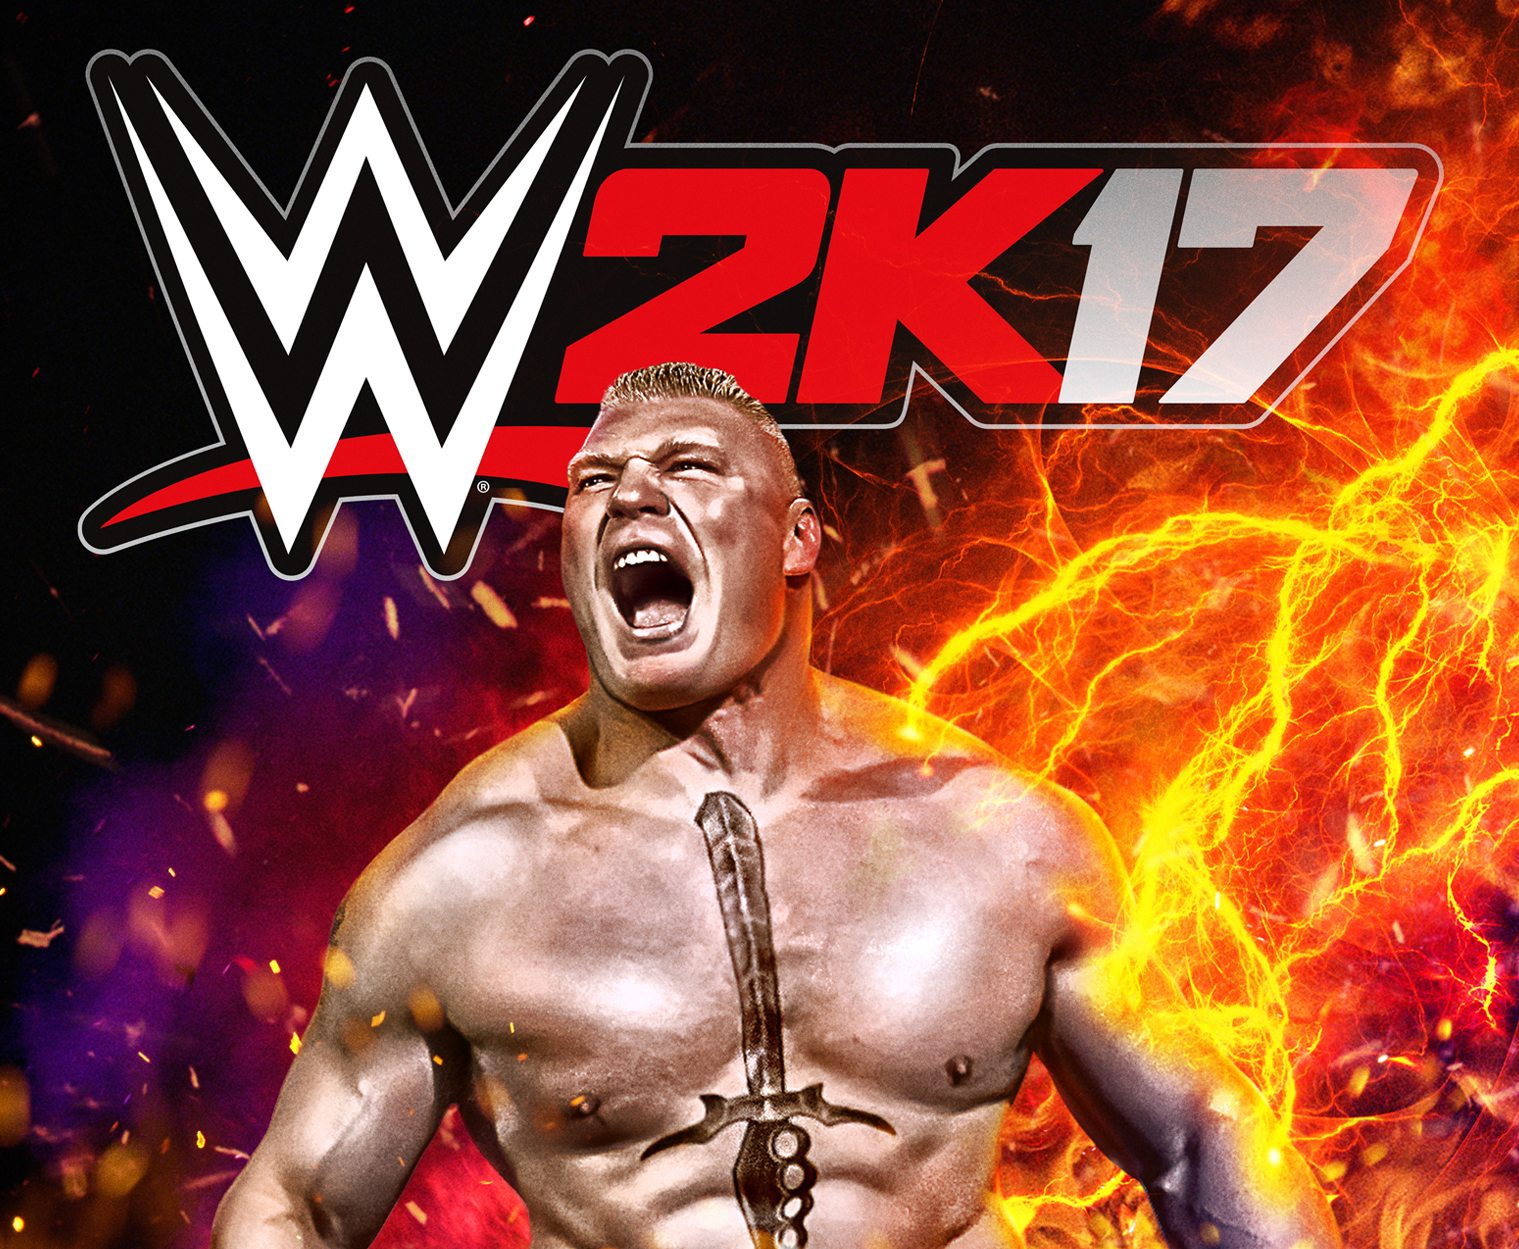 WWE 2K17 Downloadable Content Offerings, Season Pass and Digital Deluxe Editions Announced